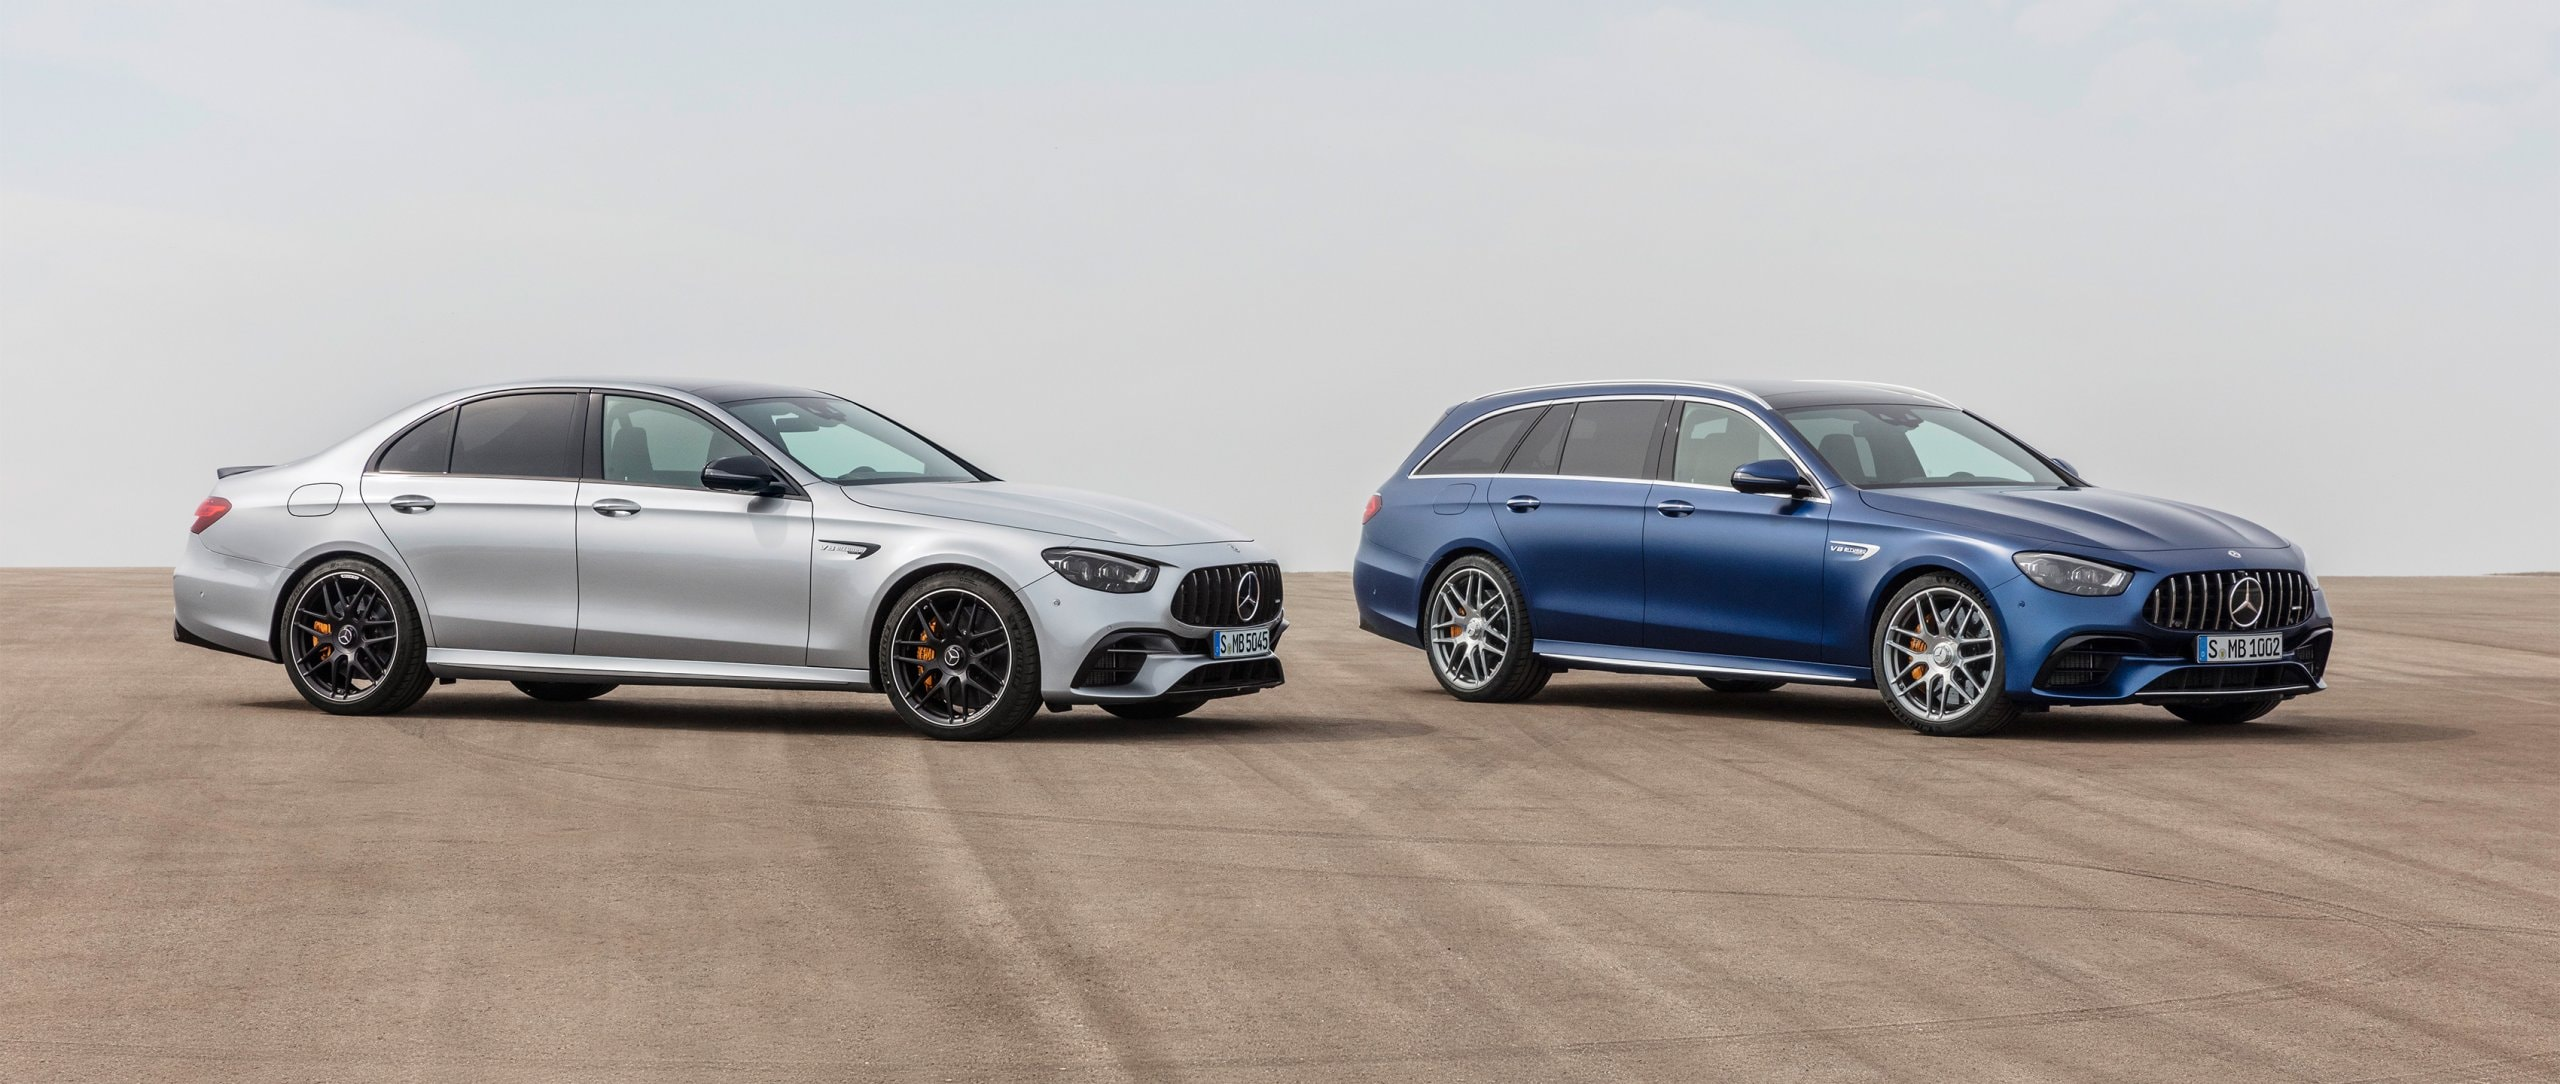 The Mercedes-AMG E 63 4MATIC+ Saloon and Estate standing side by side on a street.